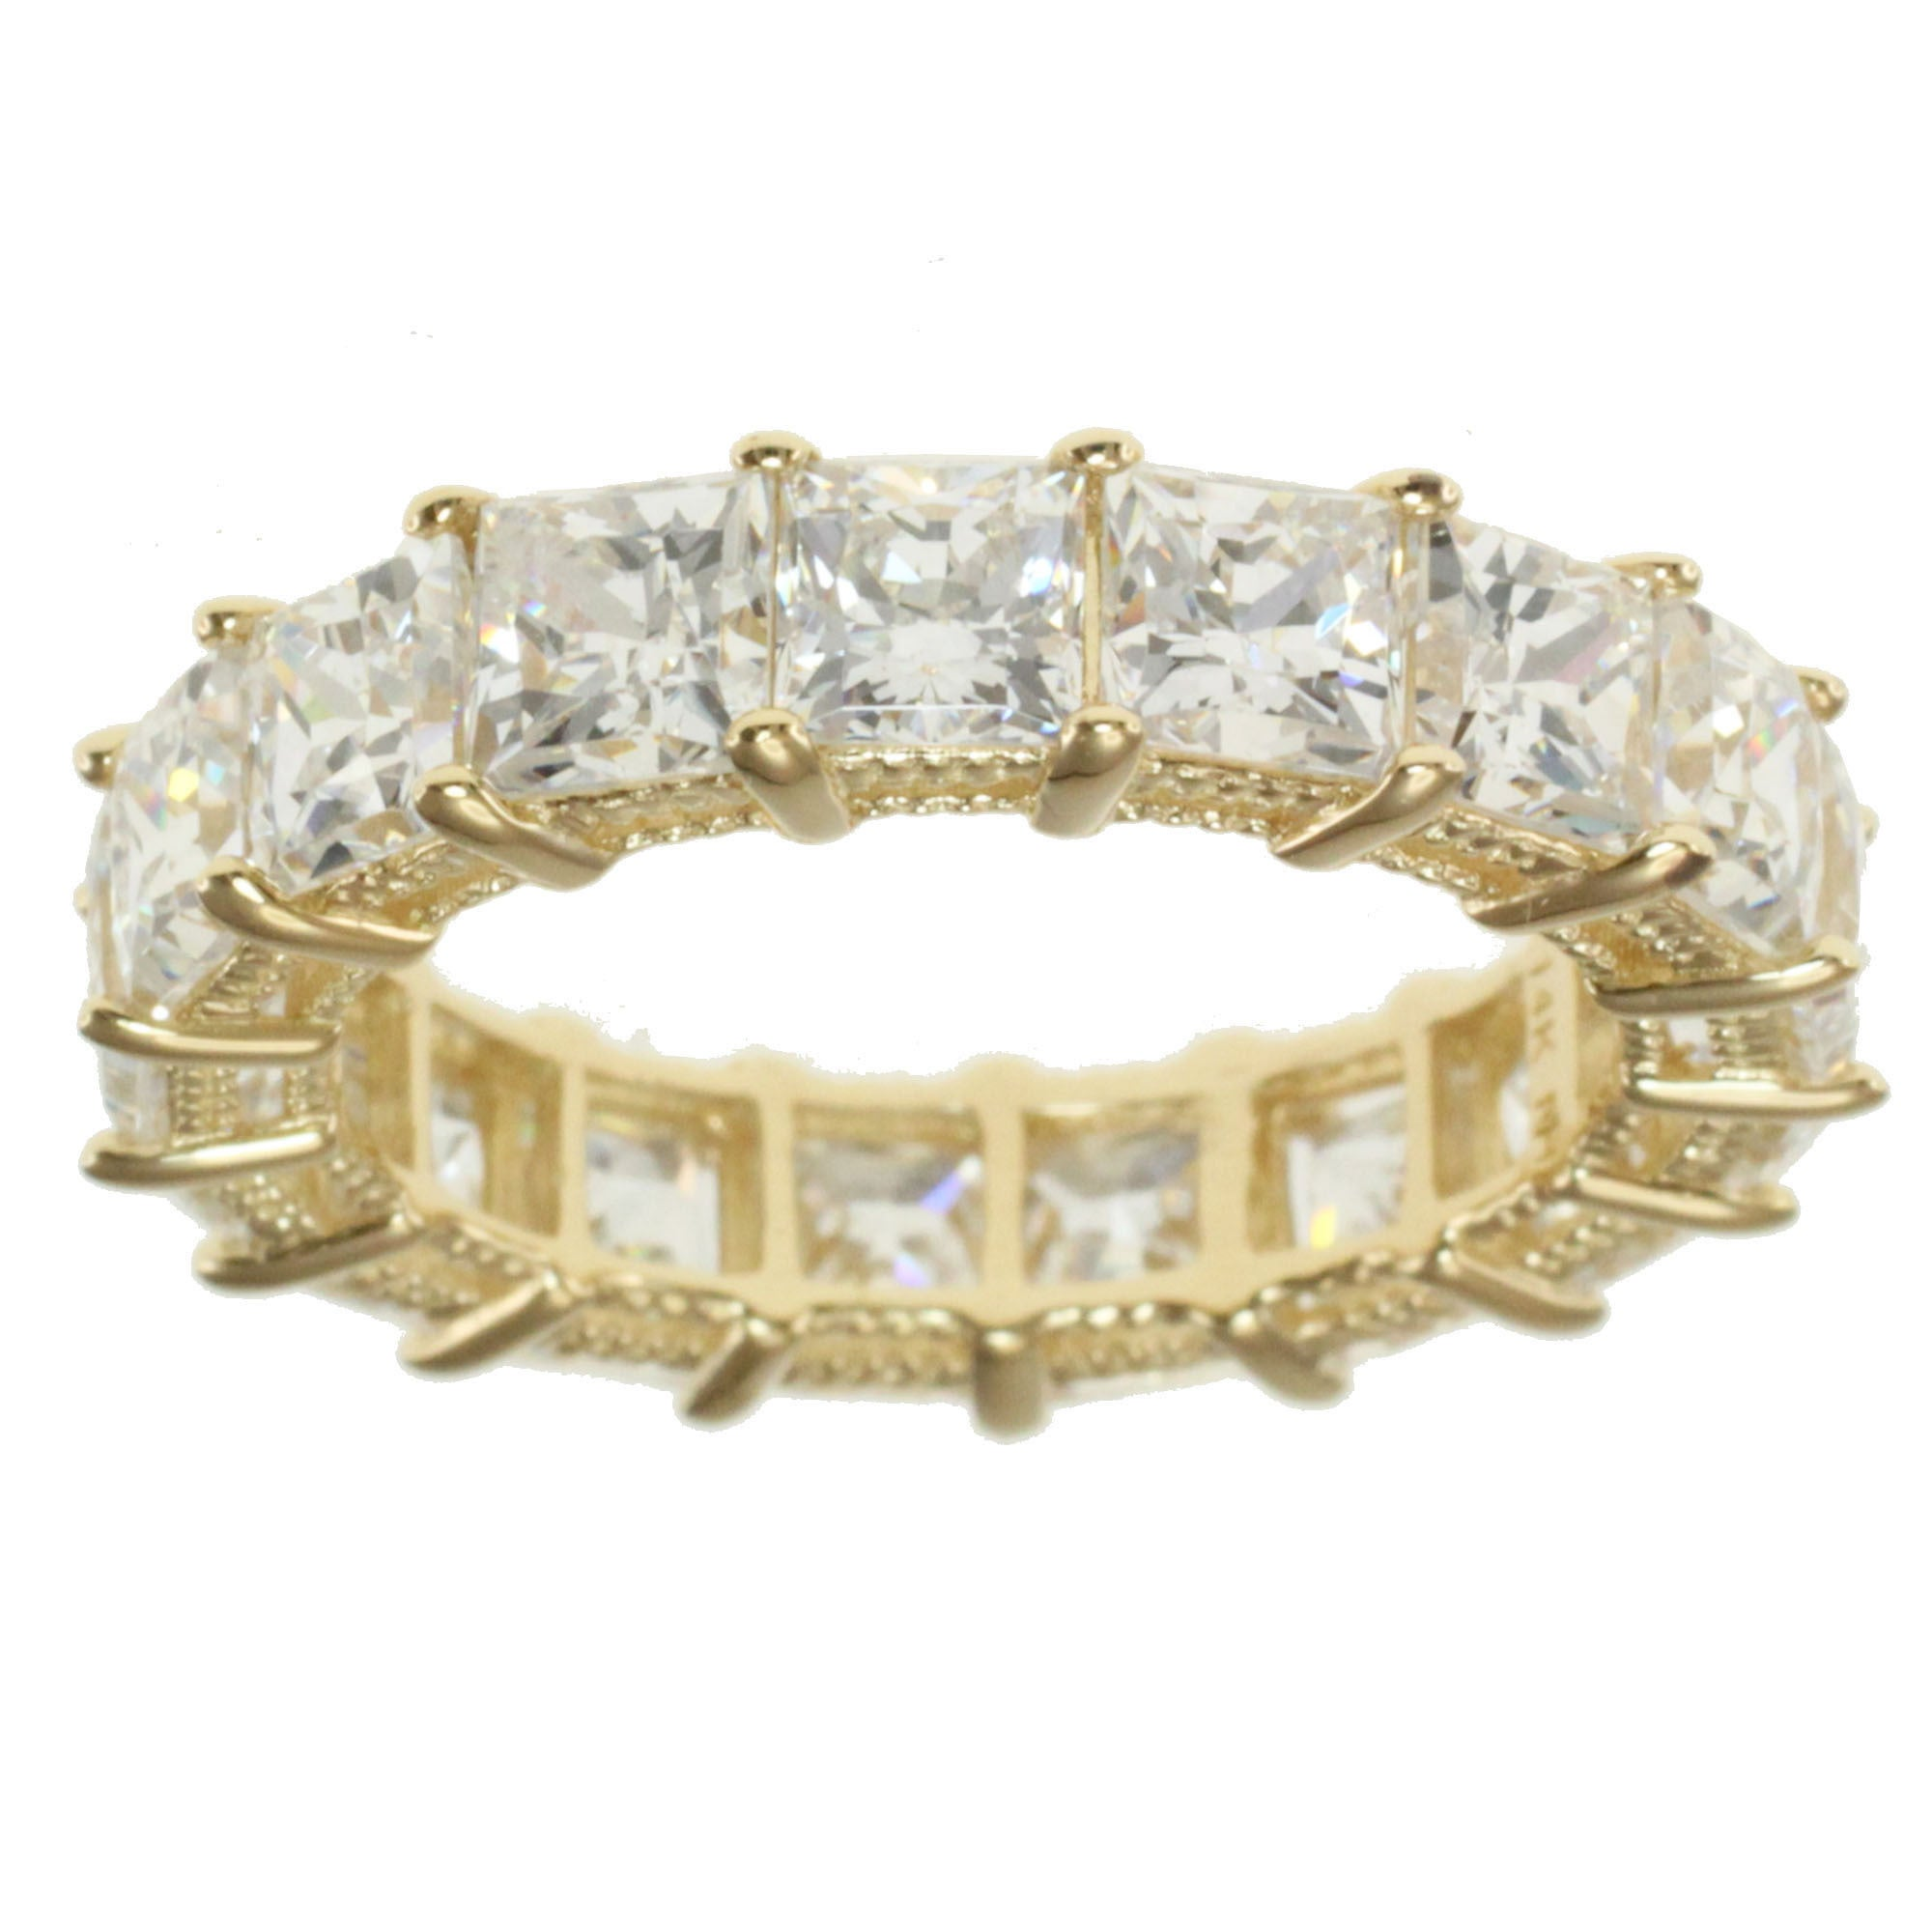 Eternity Ring 14k Yellow Gold with CZ Stones